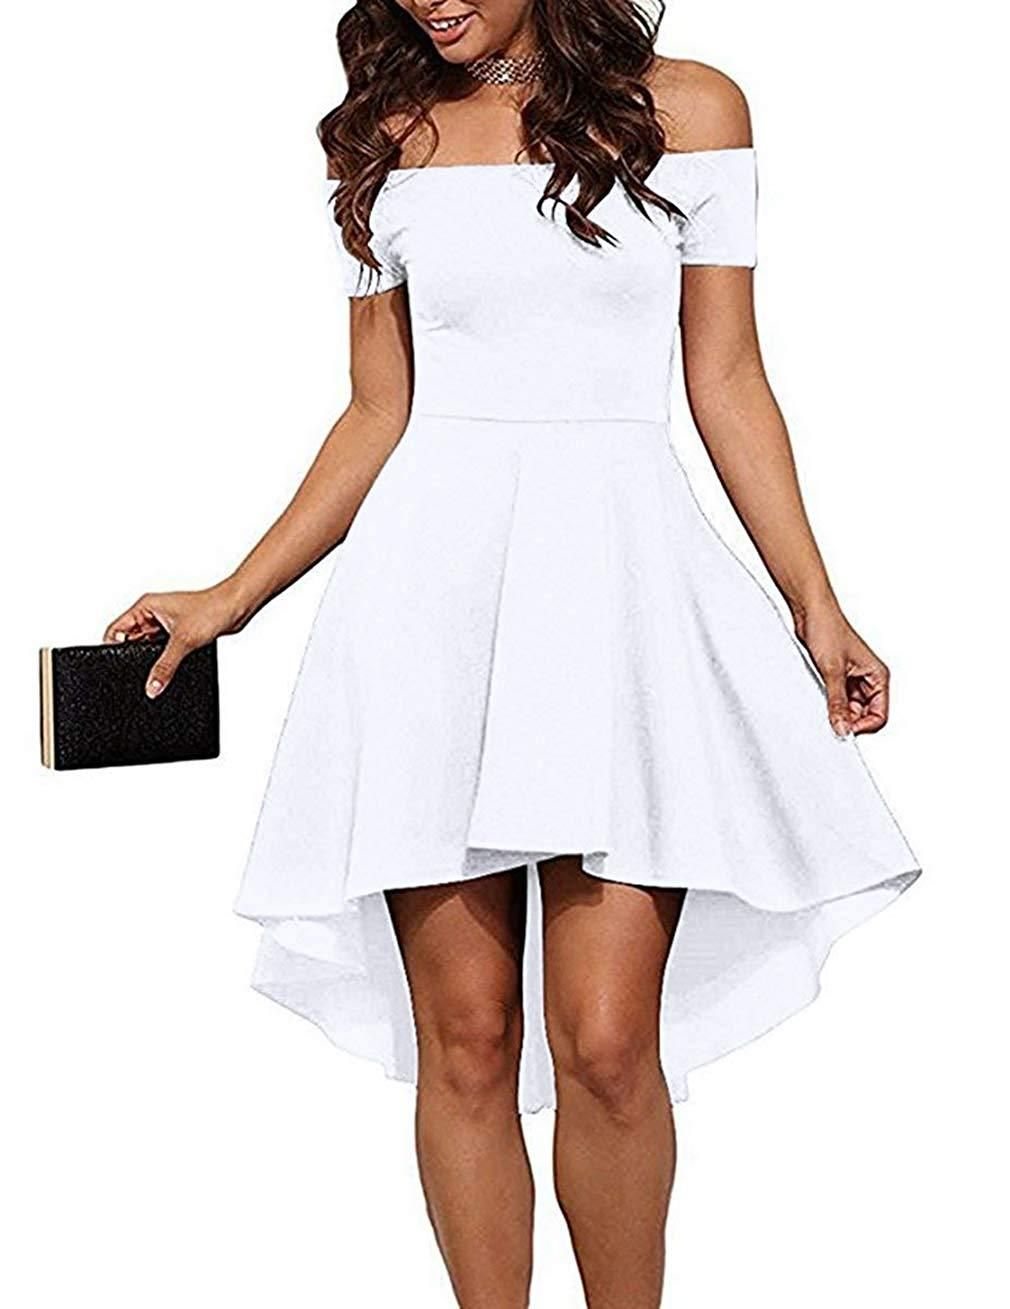 f7711eb7c0 Sarin Mathews Womens Off The Shoulder Short Sleeve High Low Cocktail Skater  Dress